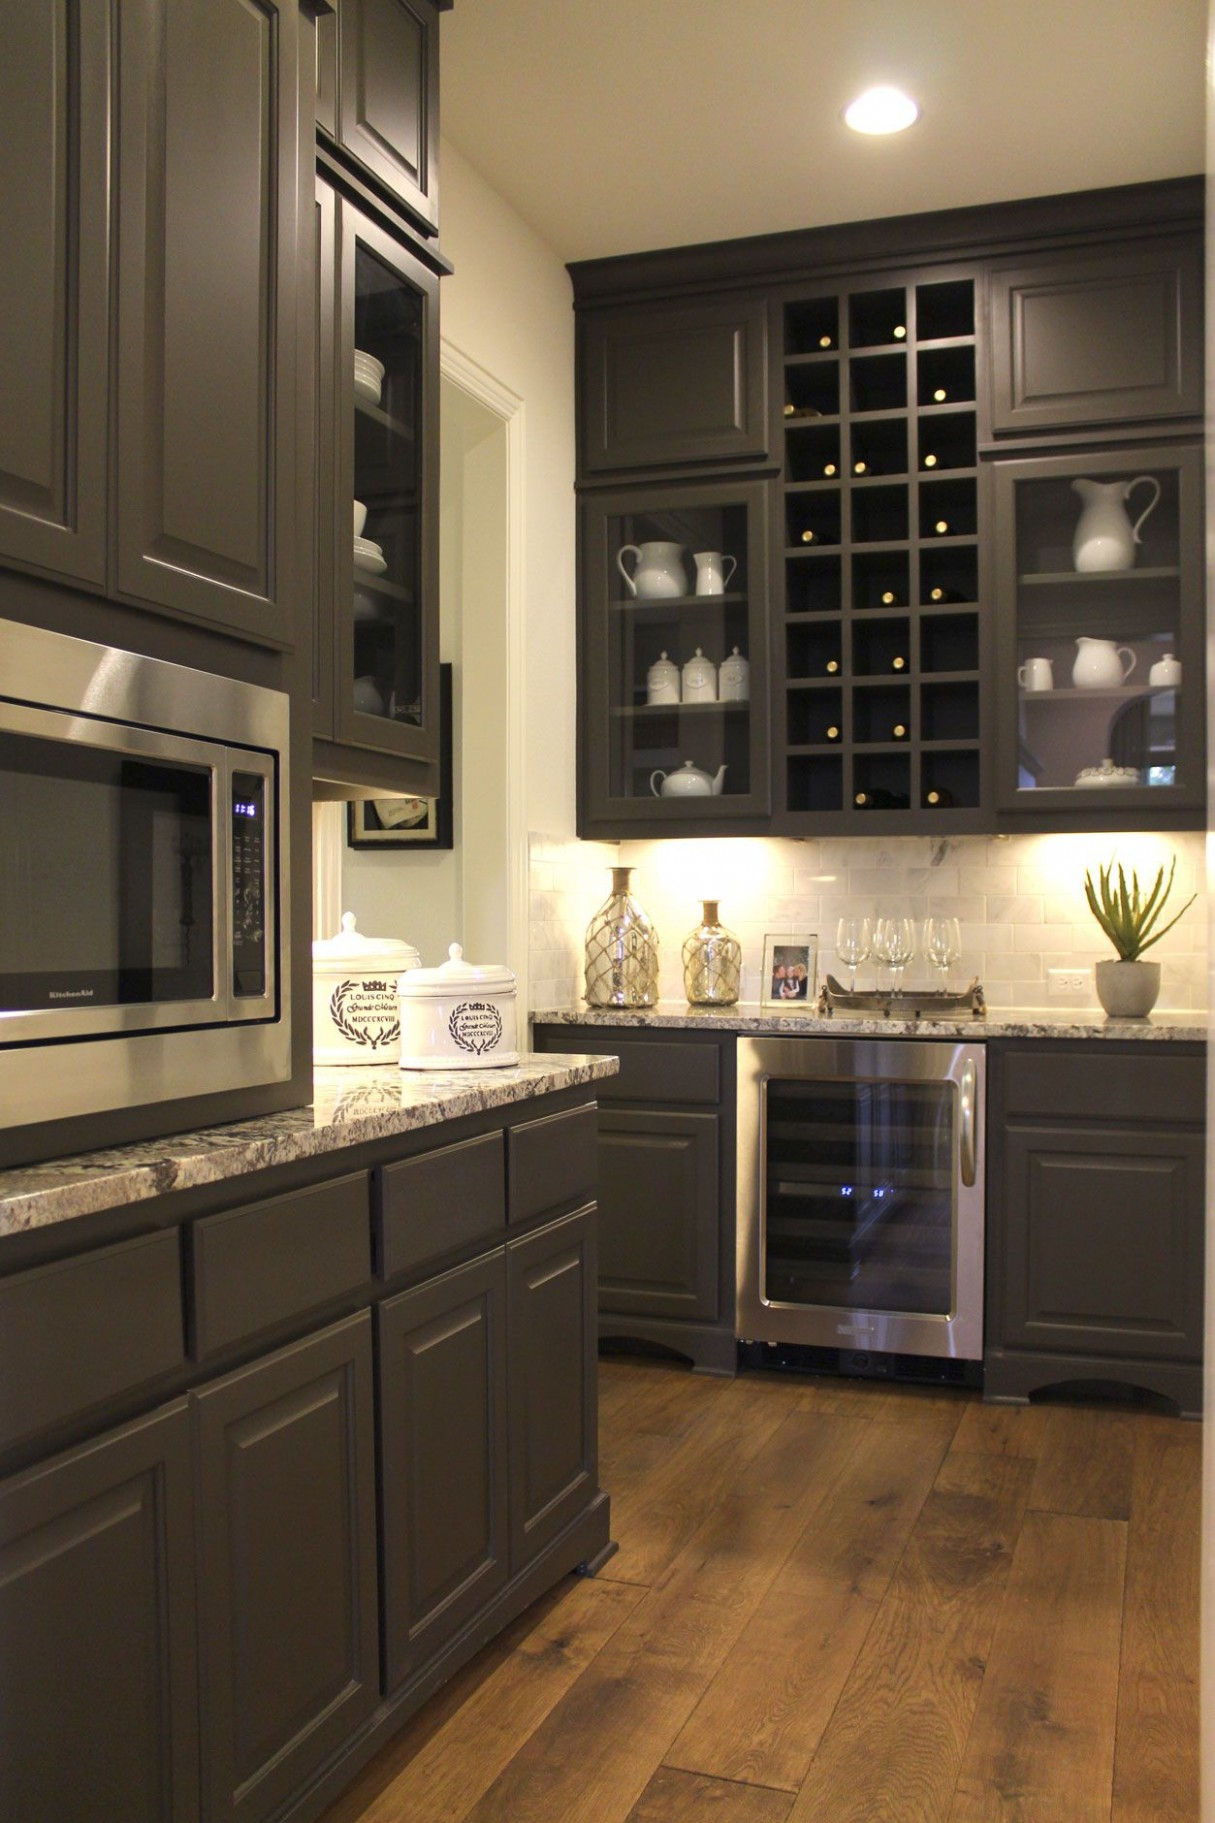 large pantry with cabinets - wine storage and glass doors  Wine  - Wine Fridge Kitchen Cabinet